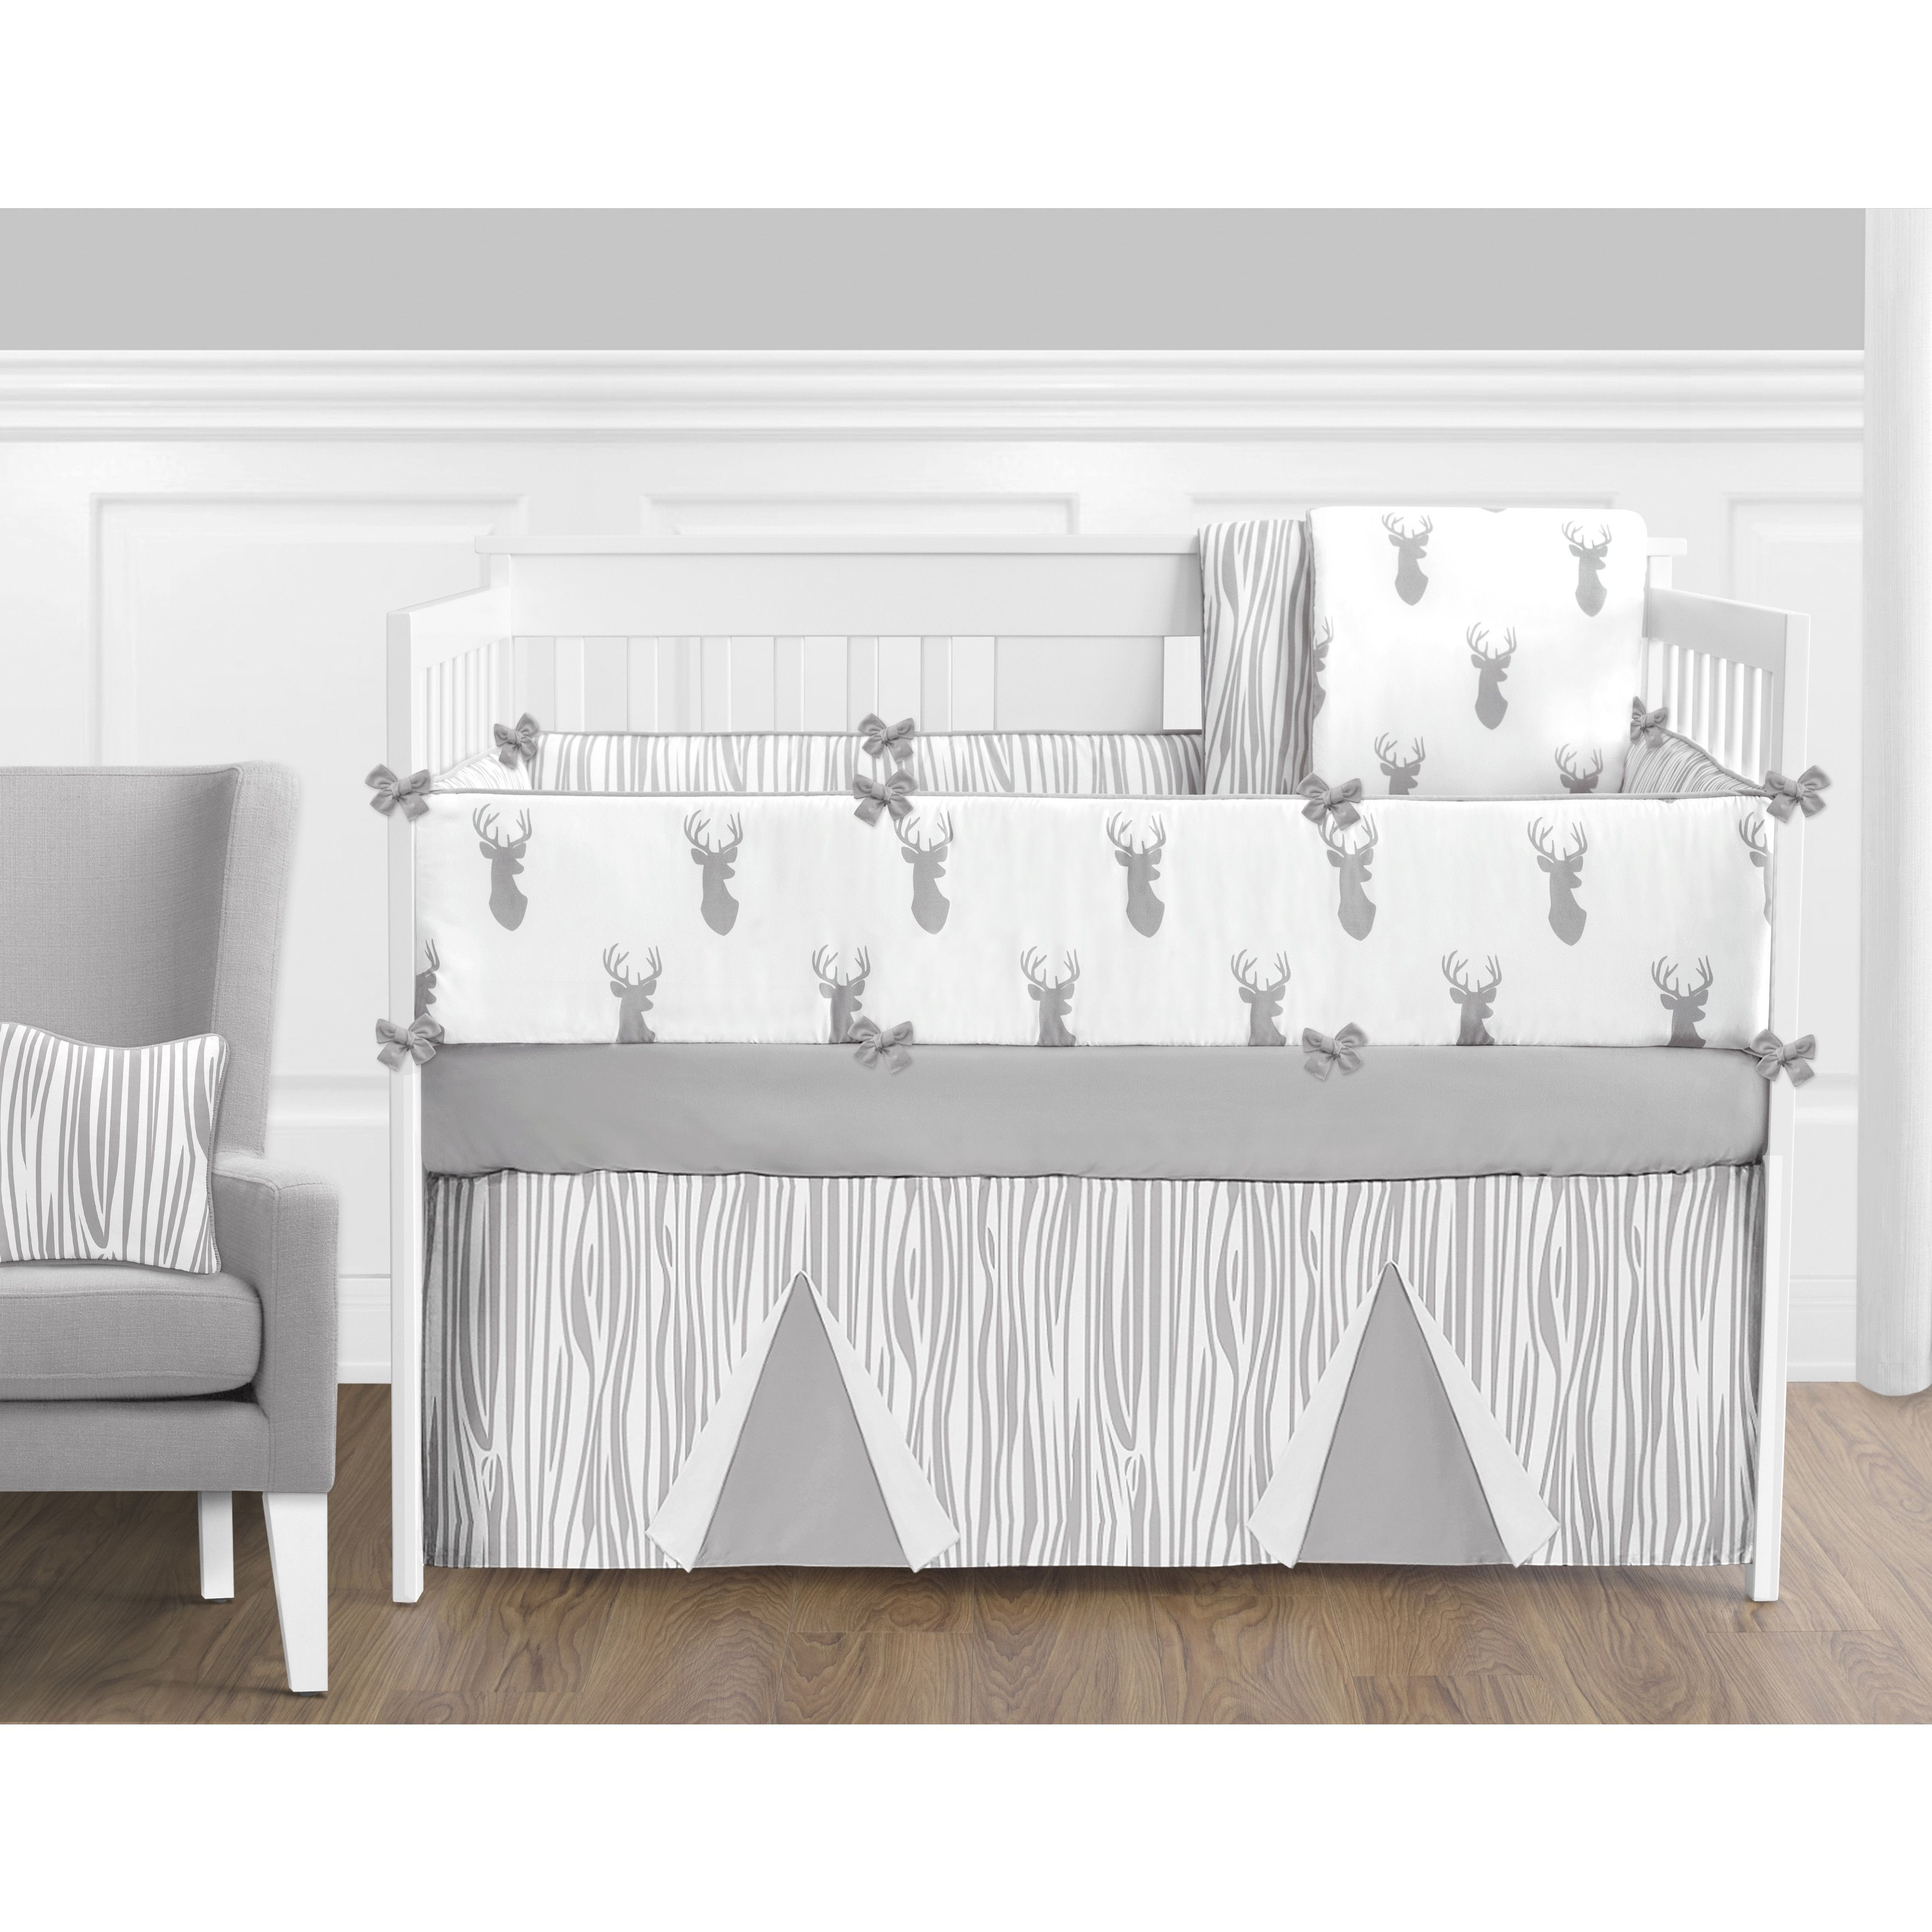 feel of look luxury ballerina designs sweet by bedroom to theme full for and ideas decor set astonishing the childa mini nursery photo shabby jojo largea cribs crib bear complete your portable bedding sets with chenille decoration